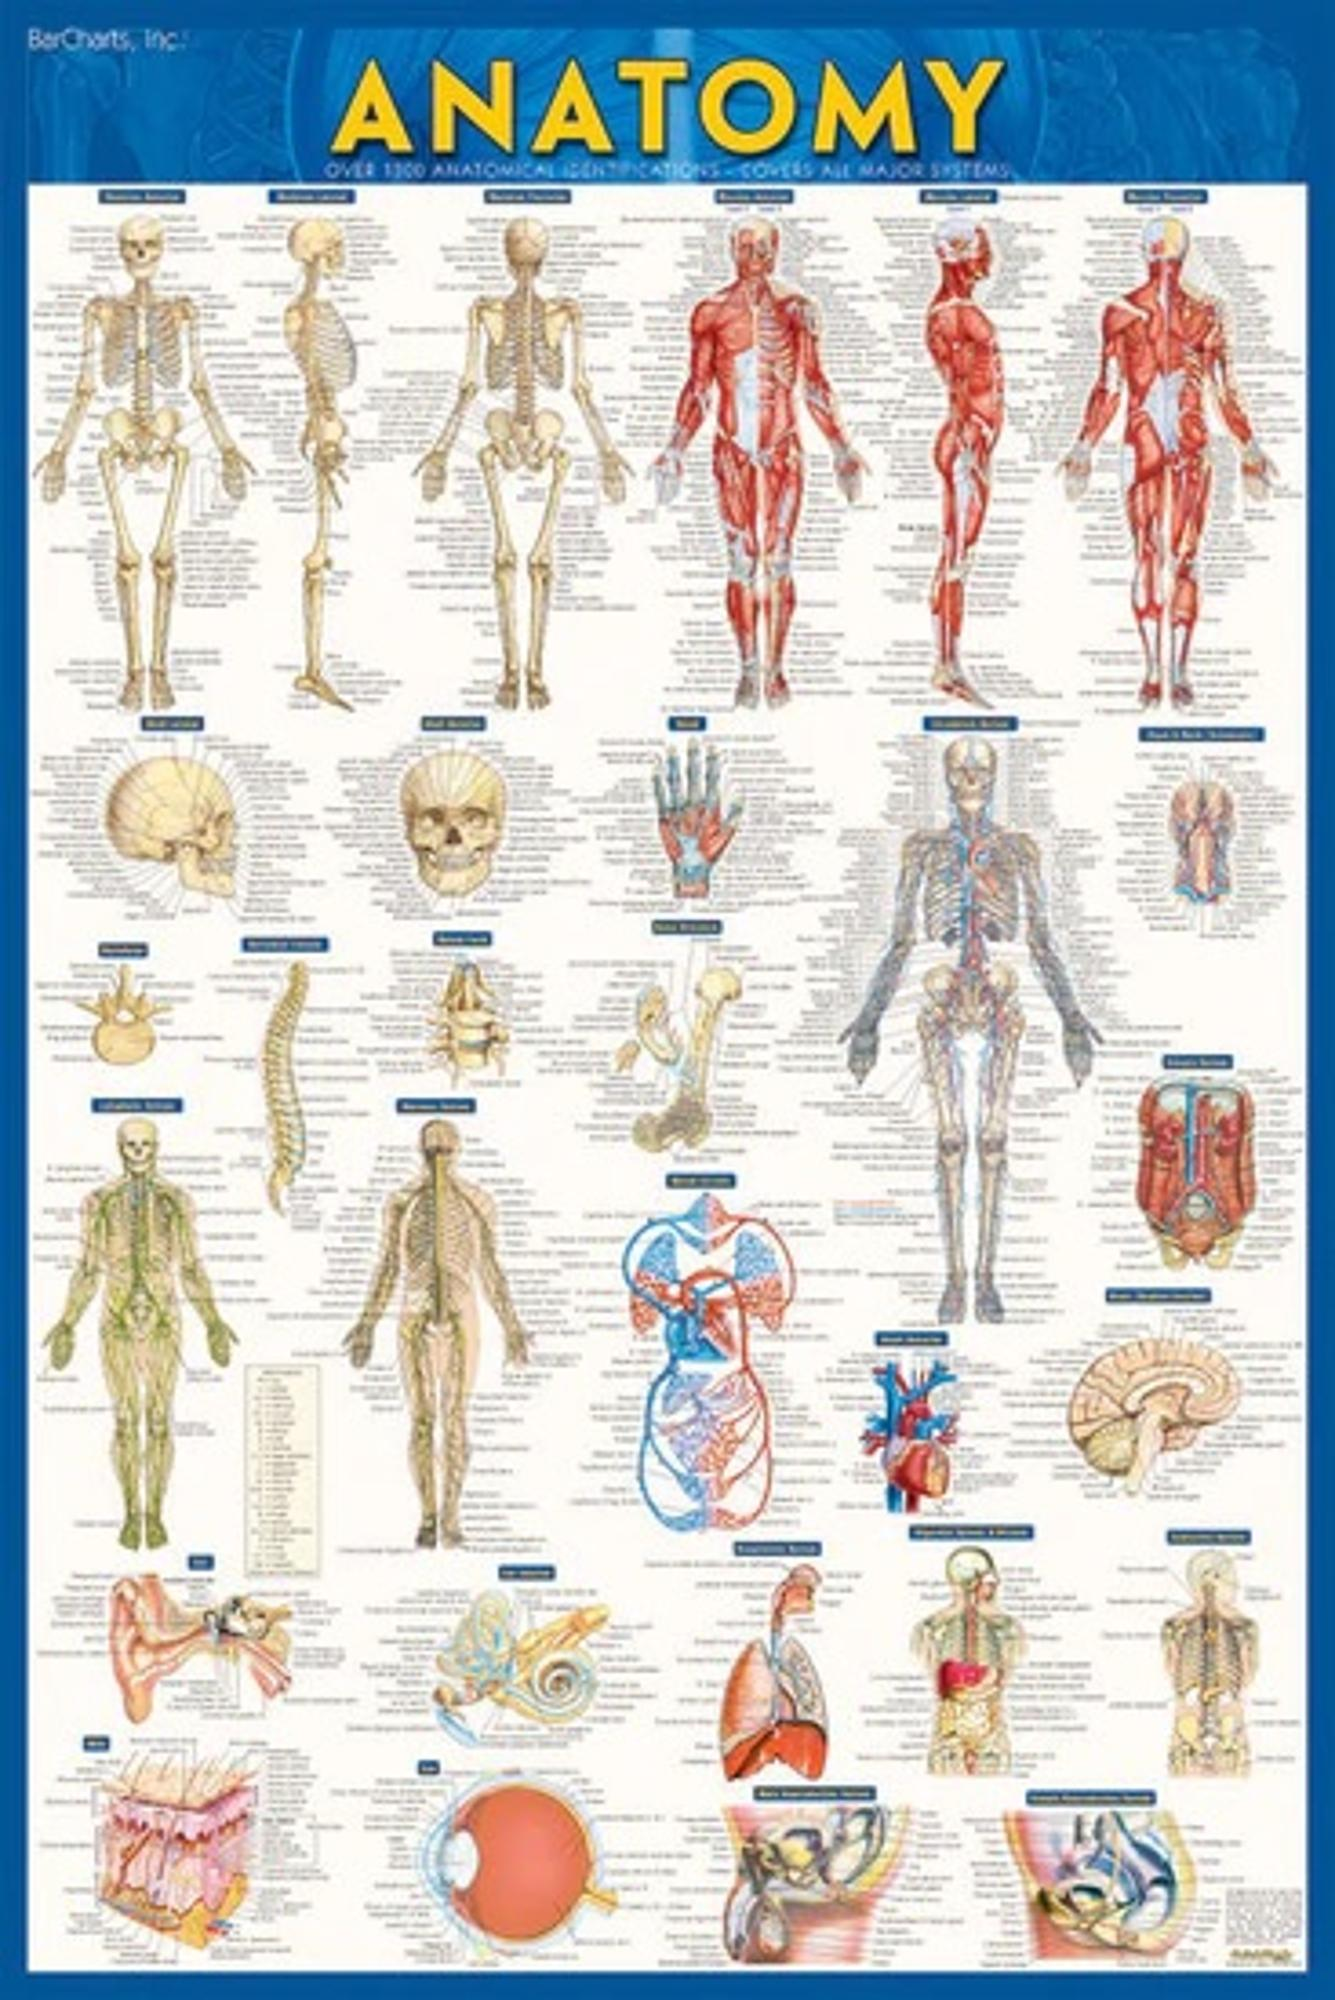 image of: ANATOMY PAPER POSTER